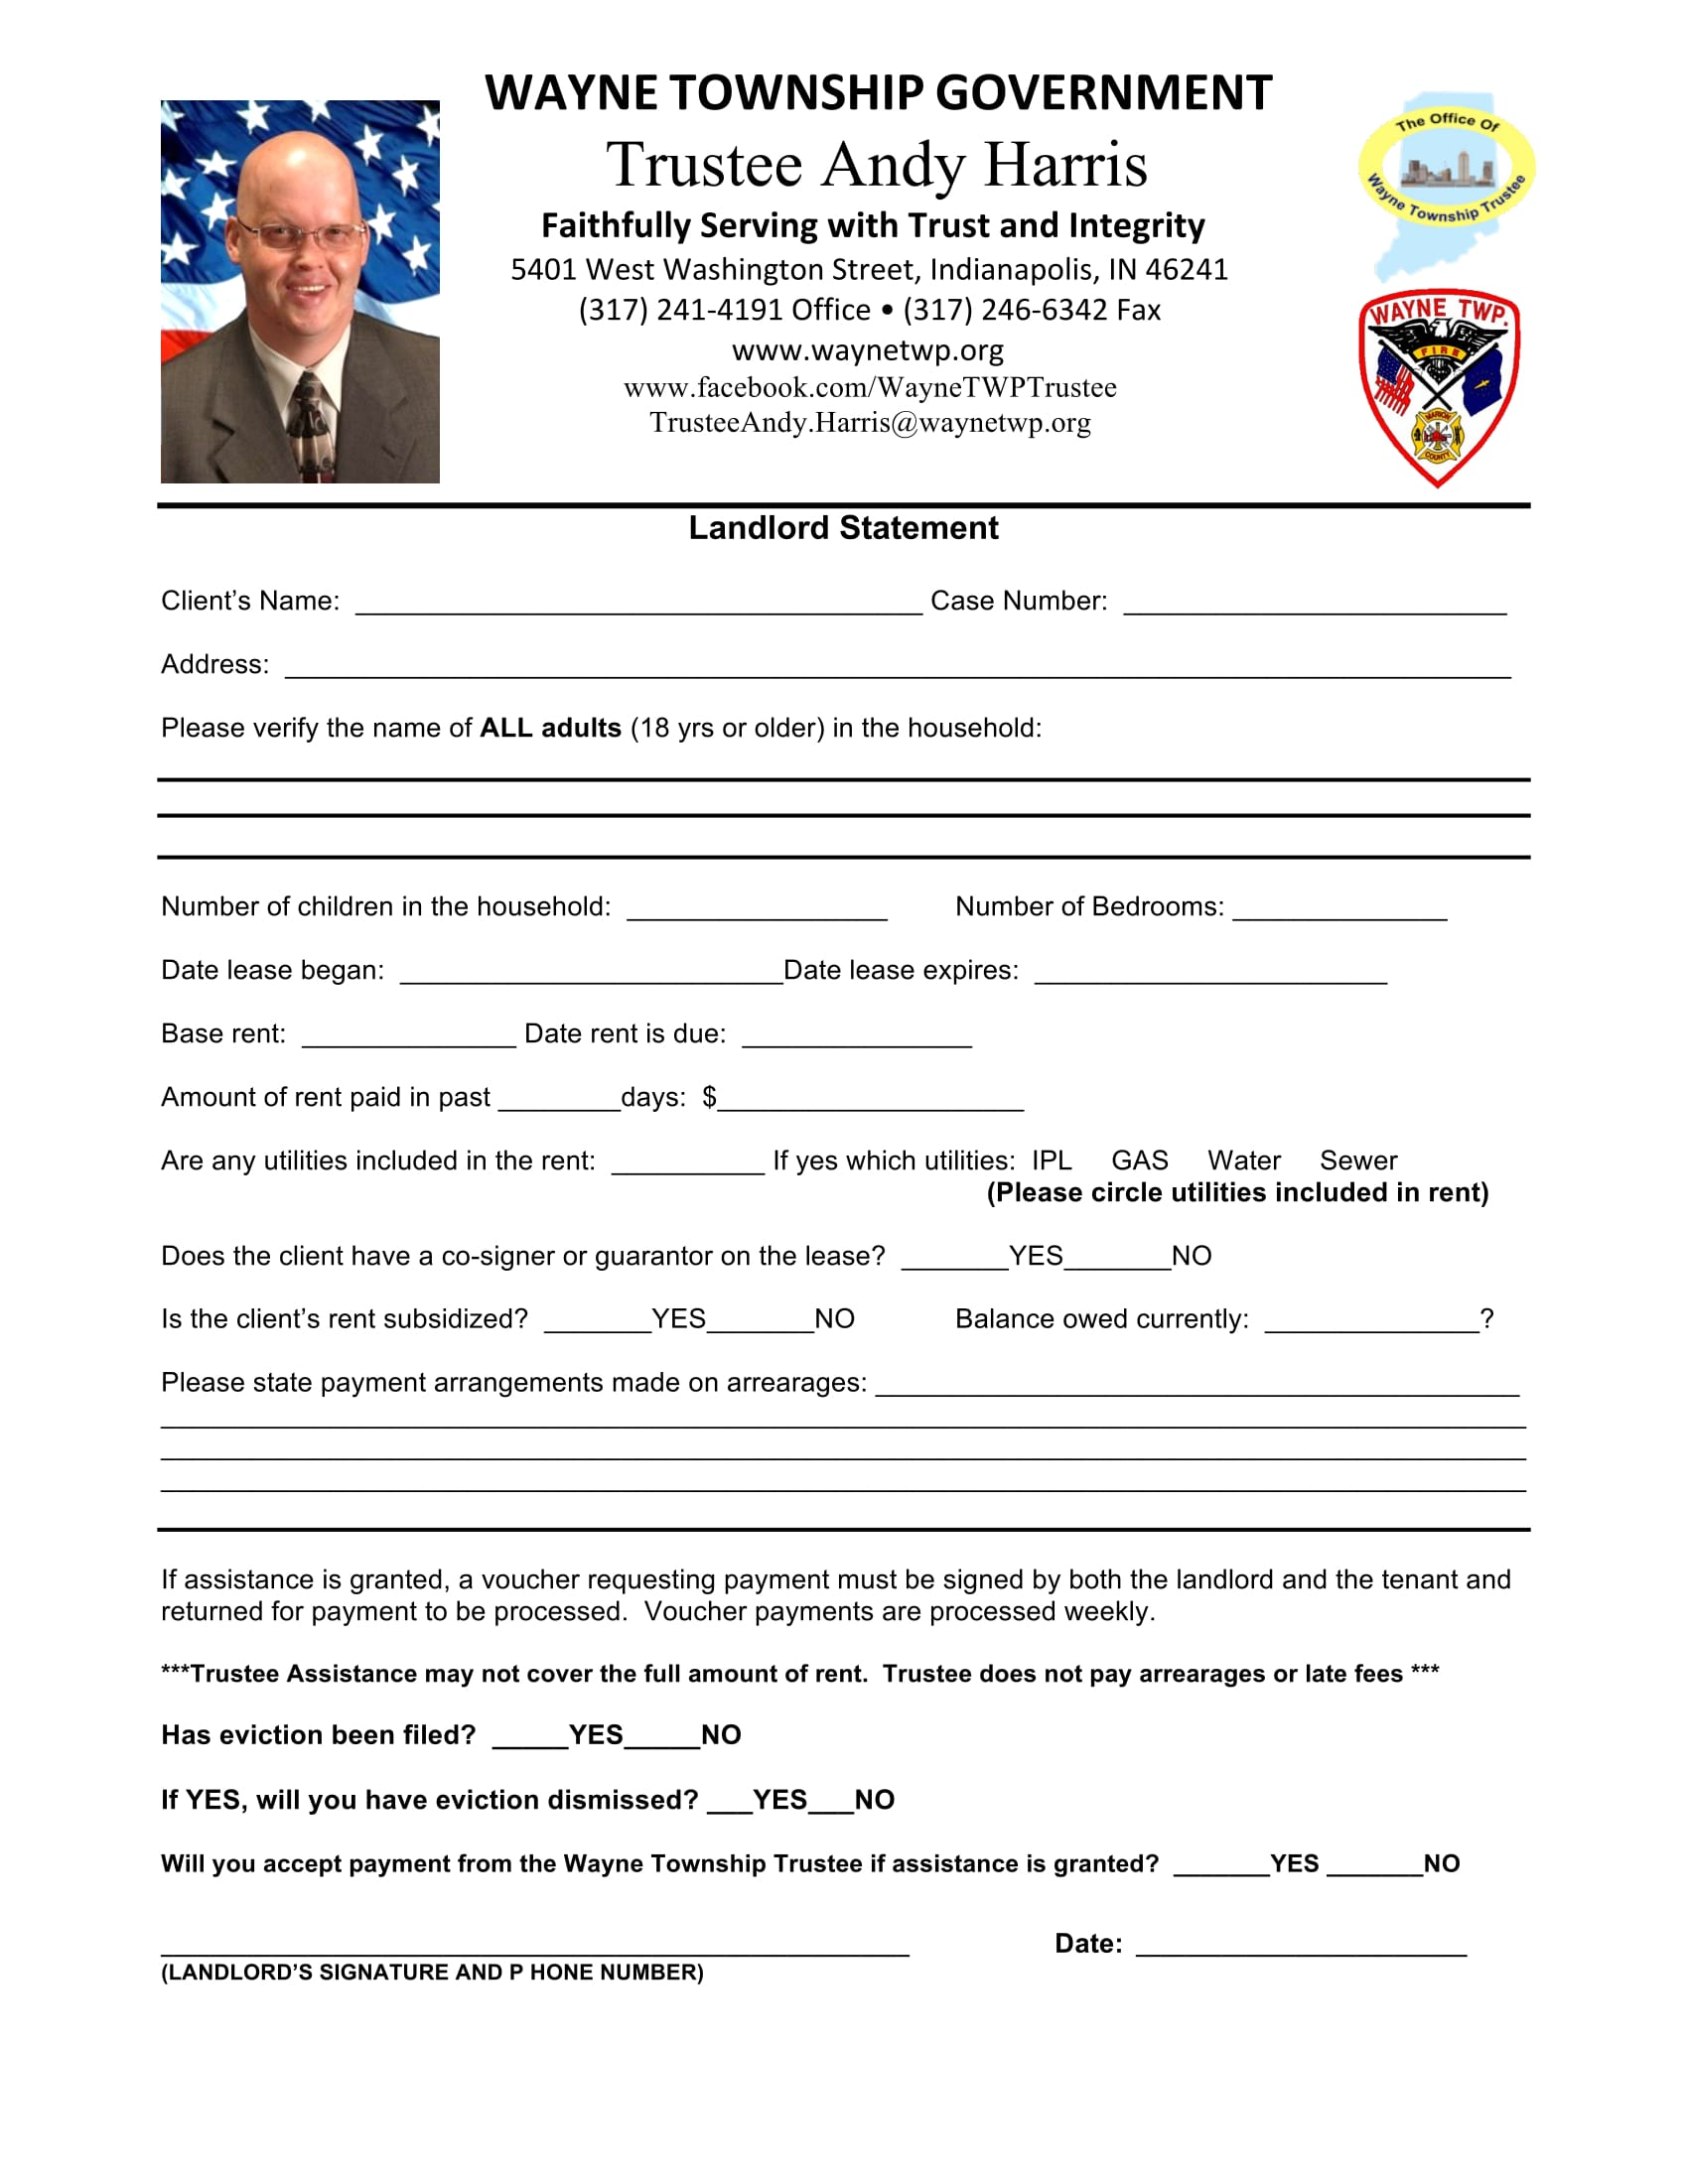 trustee assistance landlord statement form 1